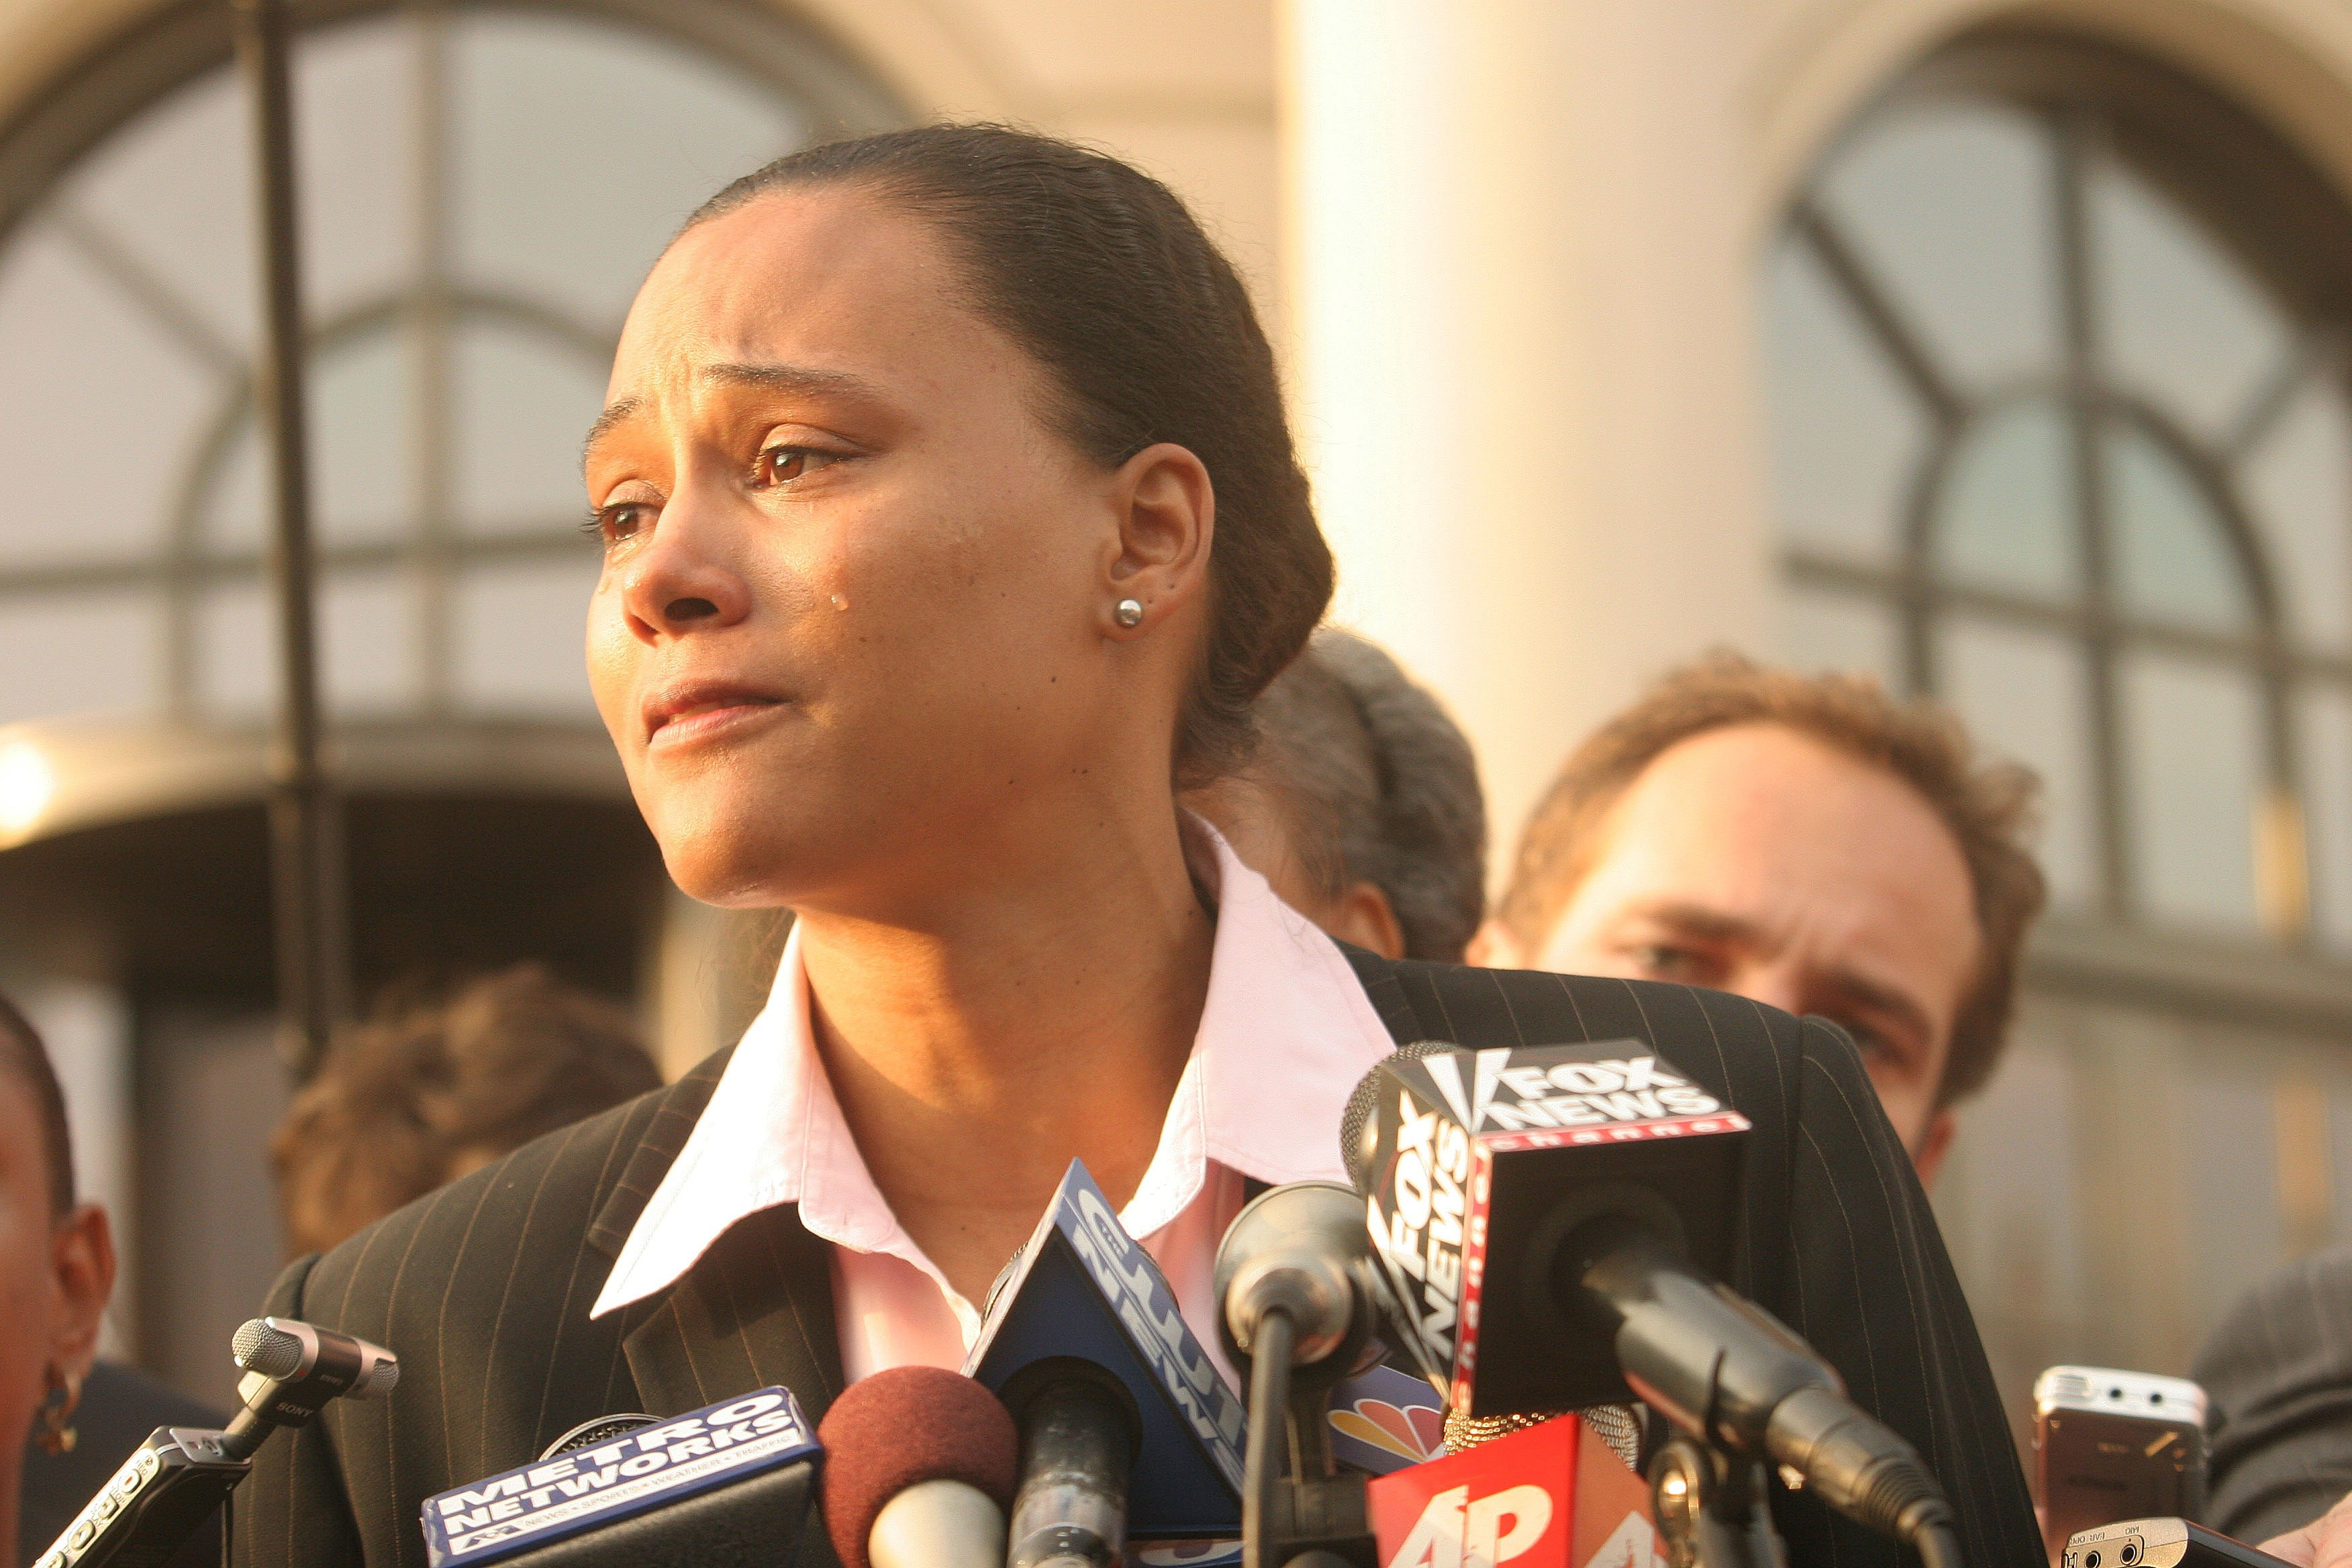 Marion Jones speaks to the media outside a United States federal courthouse October 5, 2007 in White Plains, NY | Photo: Getty Images